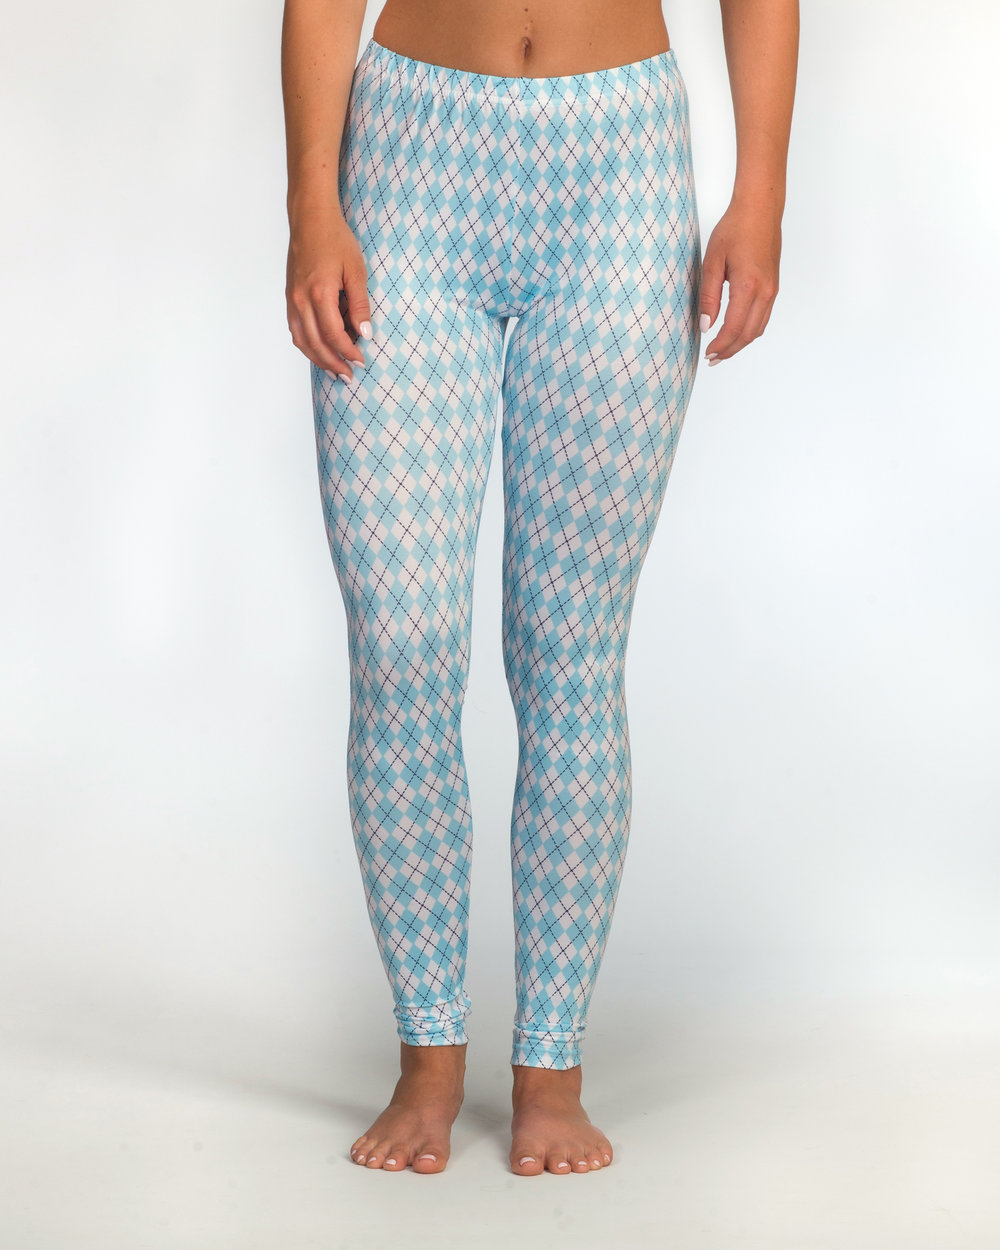 "Madison is 5' 6"" tall, with 33"" hips, and is rockin' a size S in our UNC Argyle Leggings."